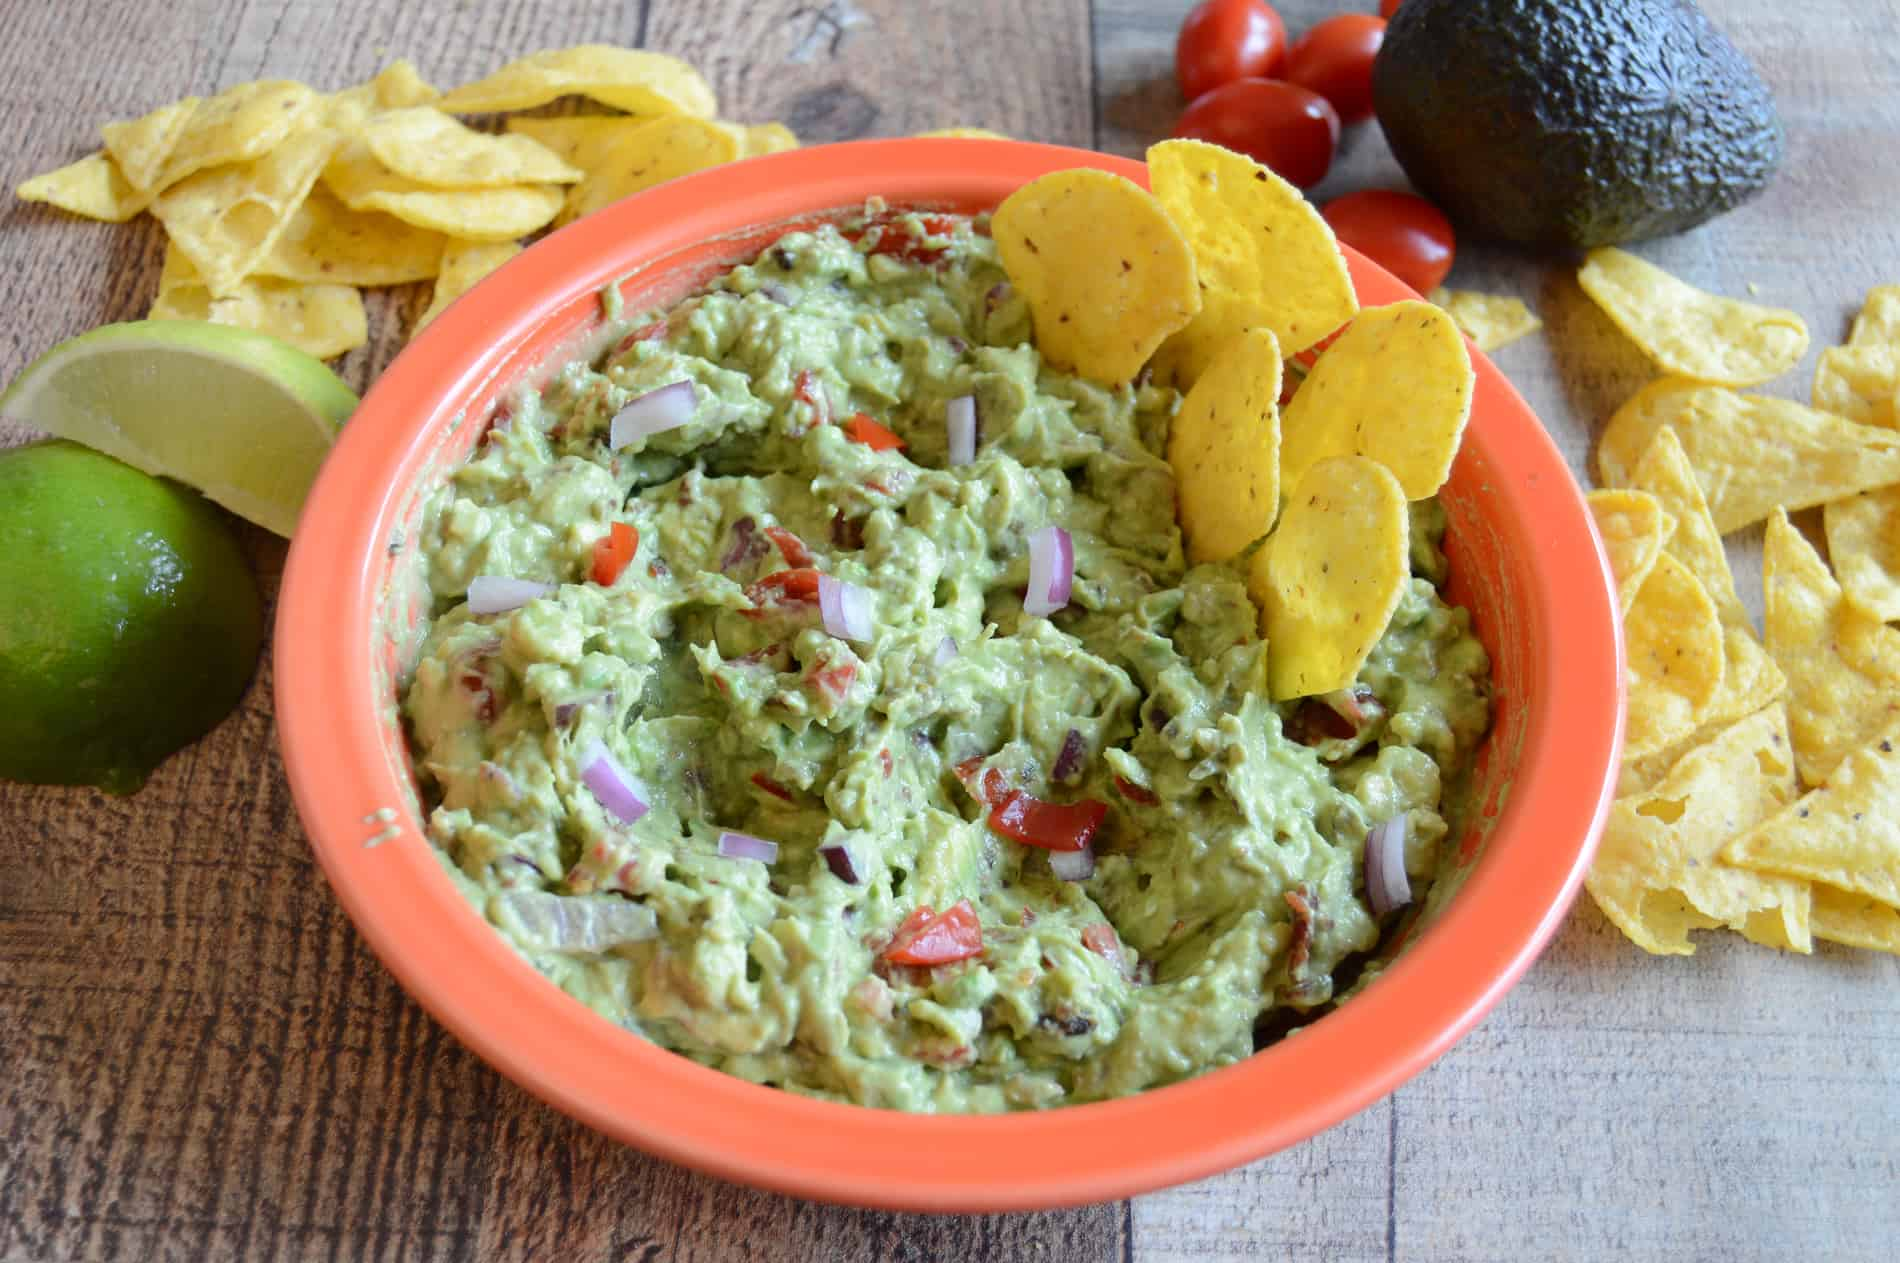 Guacamole Dip made with bacon, tomatoes and onion in a red bowl and wooden background